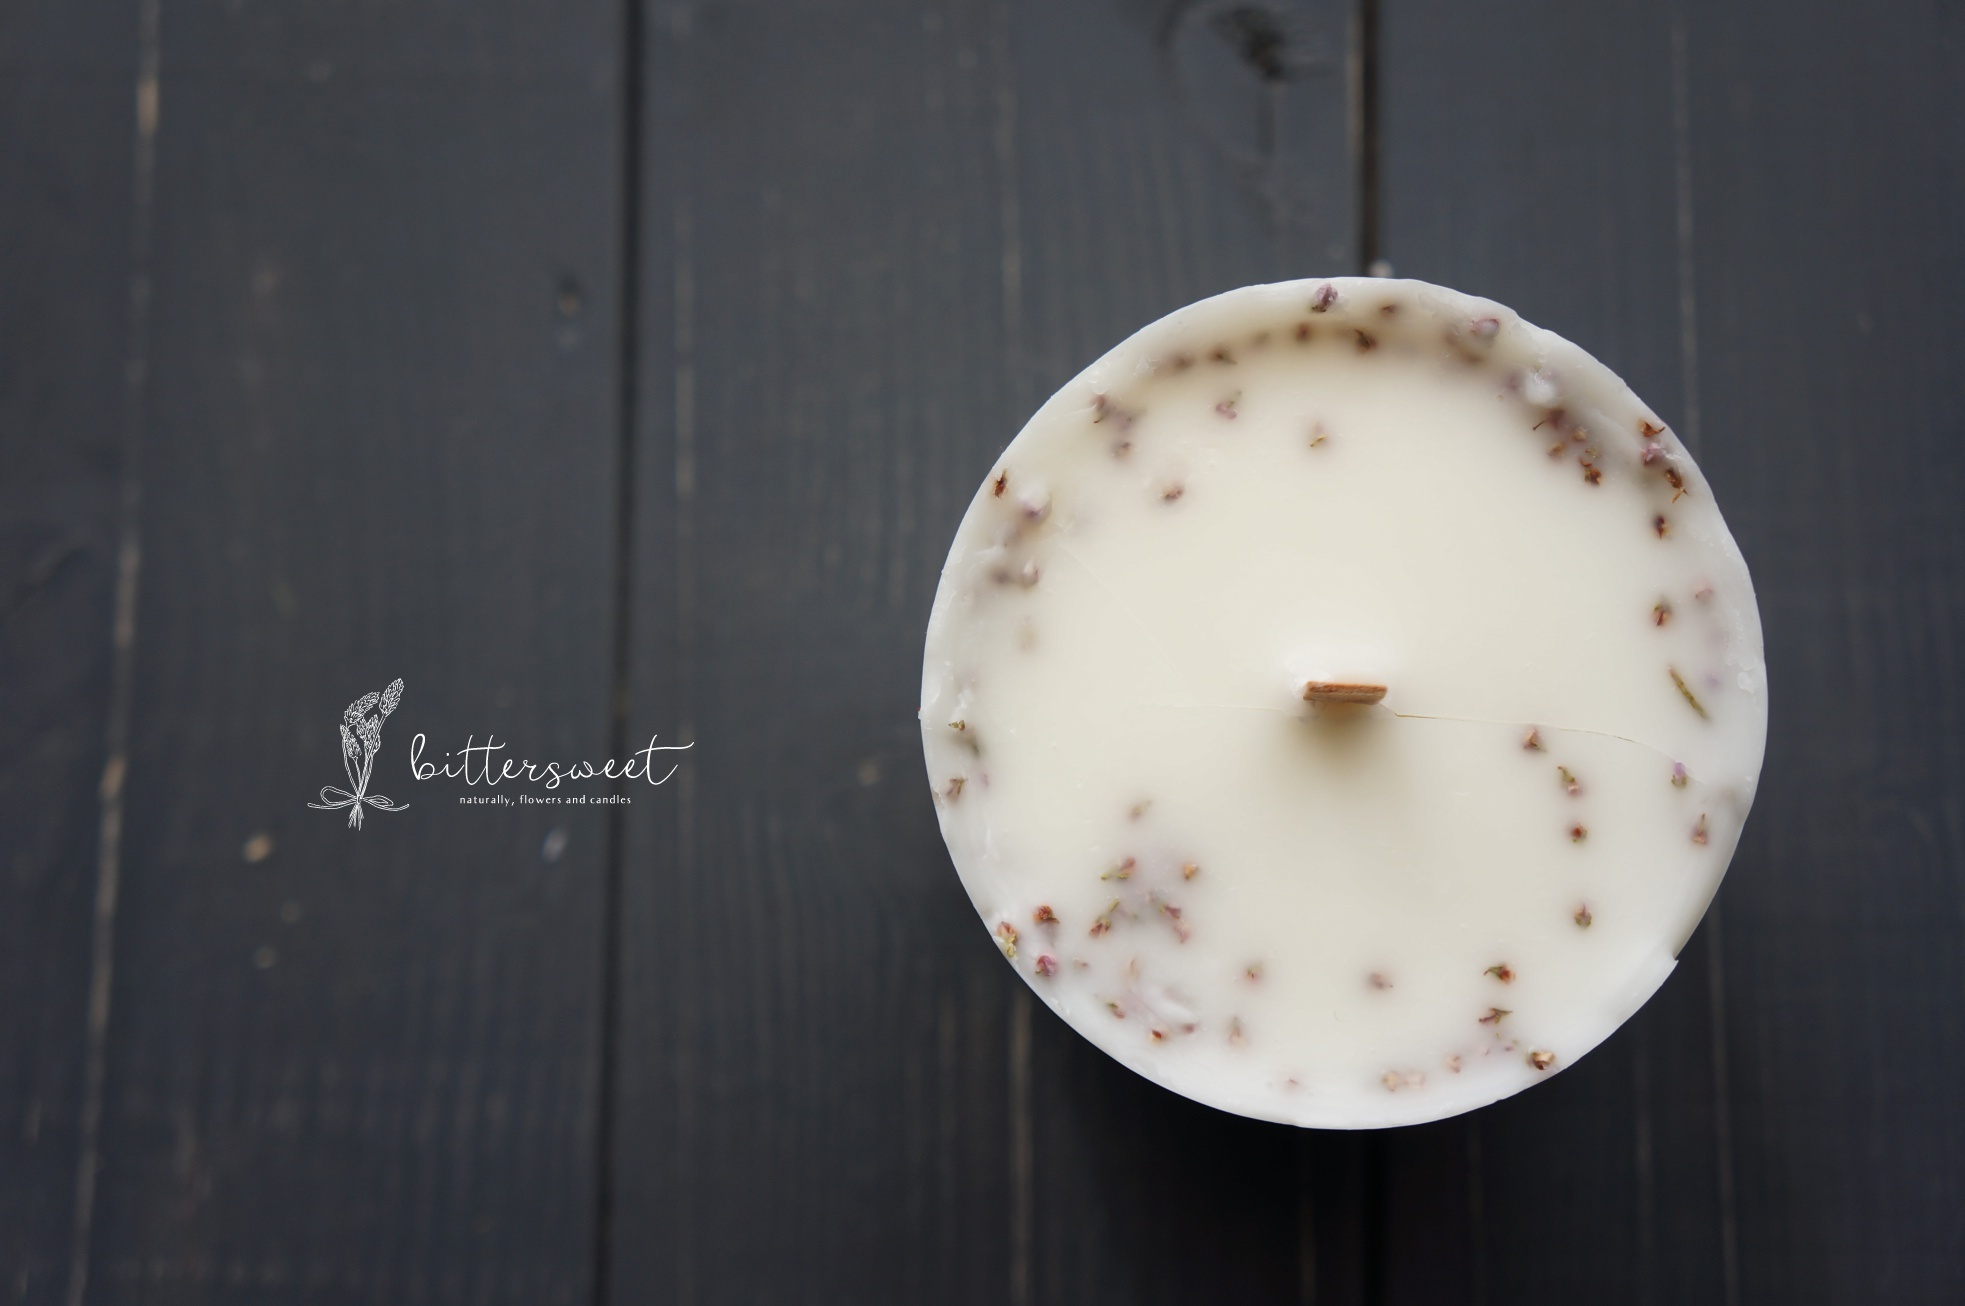 Botanical candle no.011